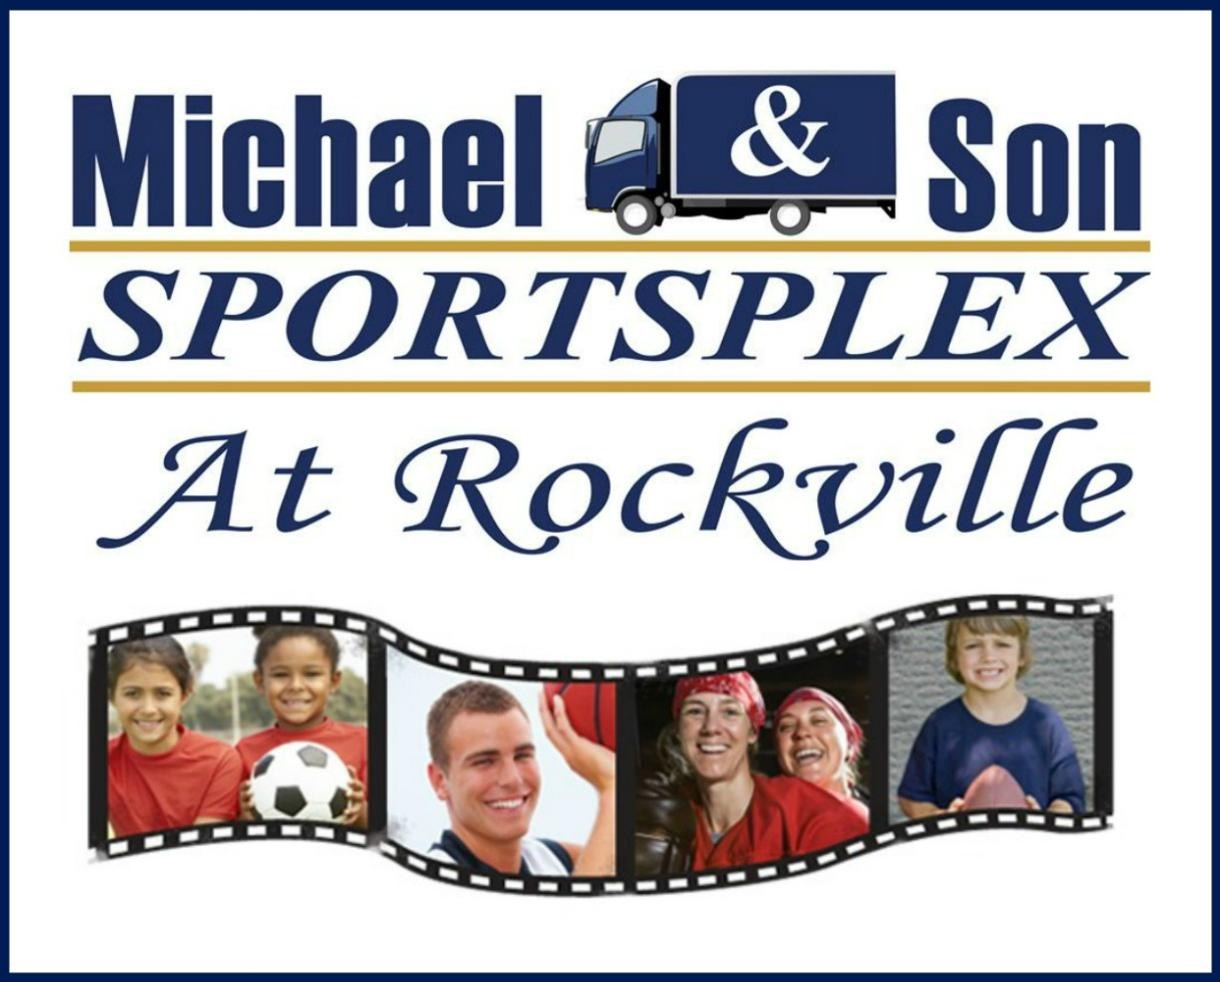 $40+ for Rockville Michael & Son 1-Day Sportsplex School's Out Camp for Ages 6-12 - Lunch Included! Extended Day Option Too! (20% Off)